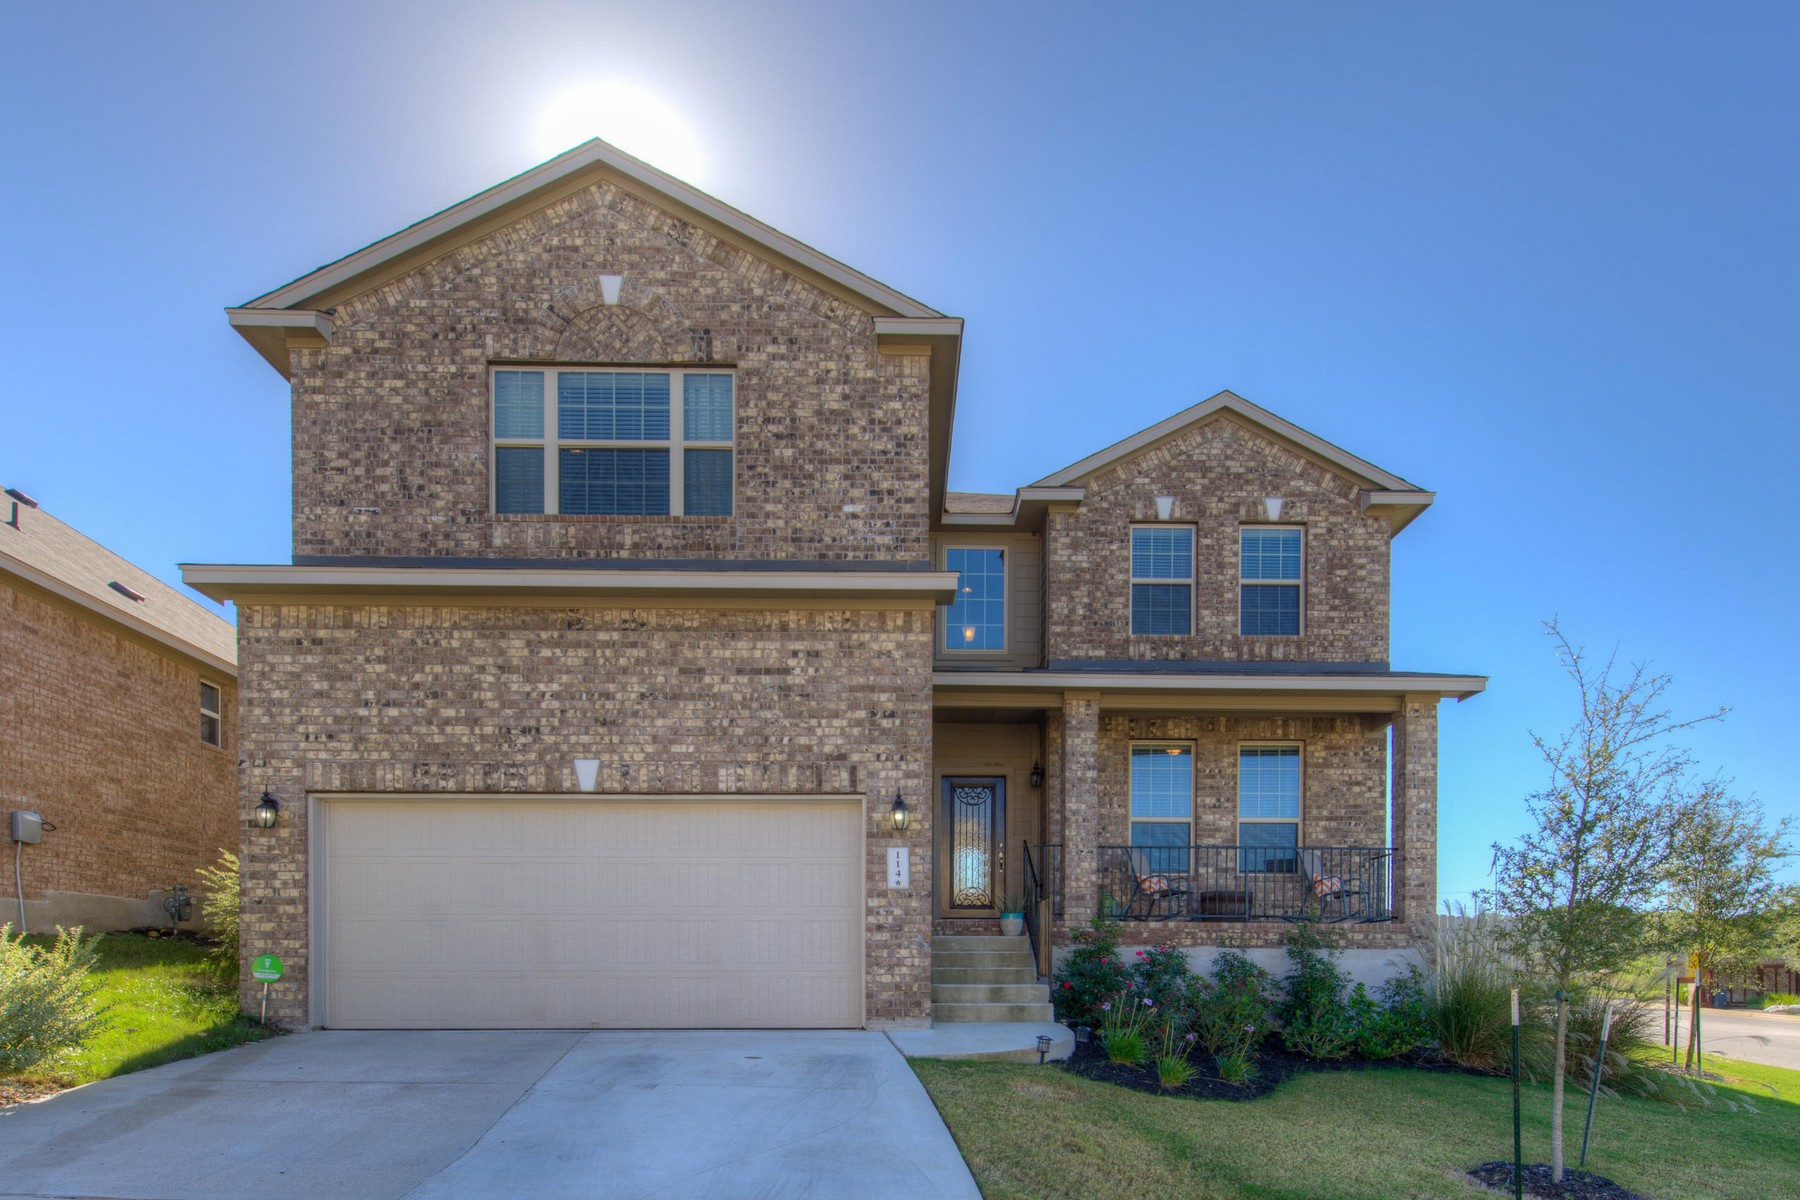 Condominium for Sale at Newly Built Ryland Home 114 Stone View Trl Austin, Texas 78737 United States